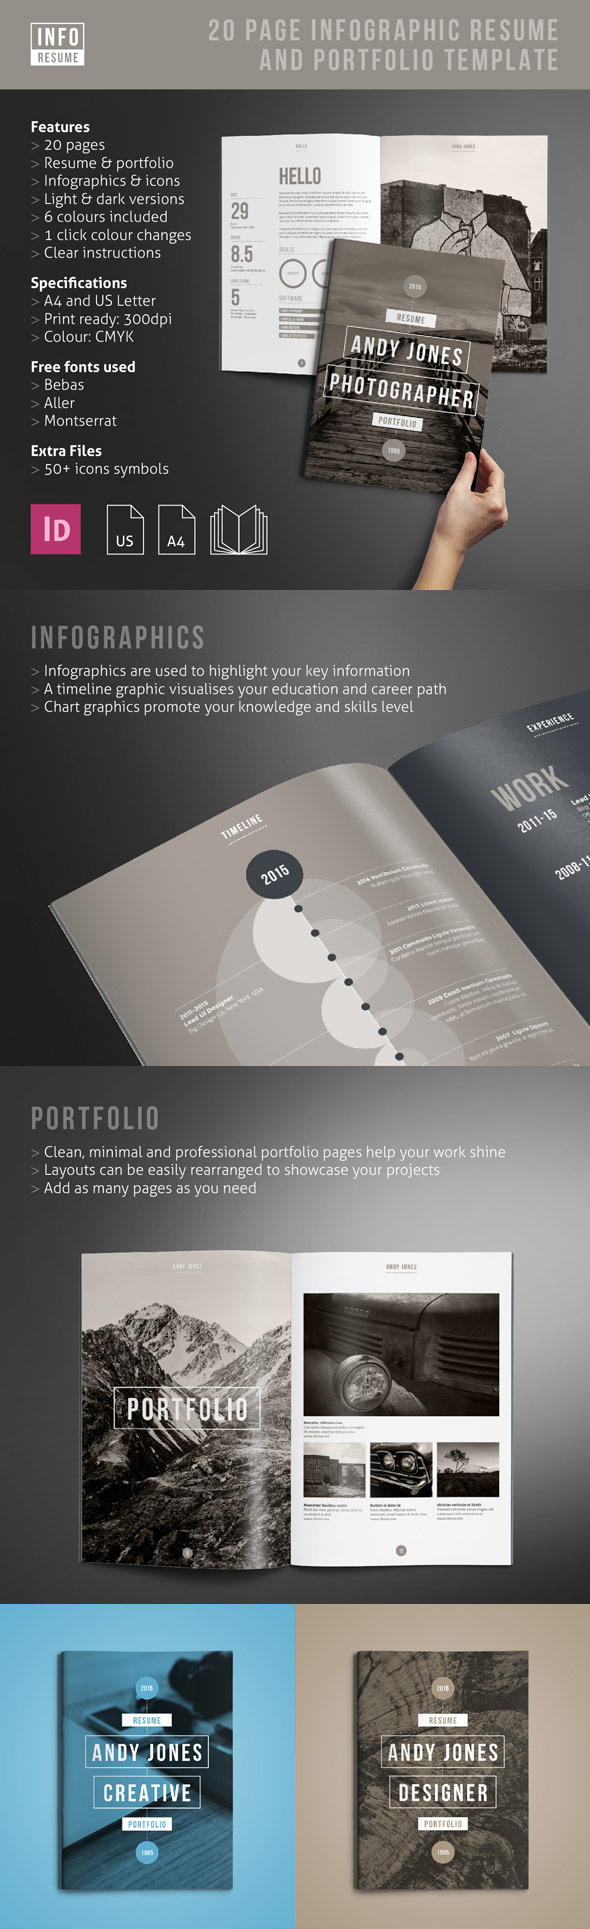 Infographic Resume and Portfolio Set